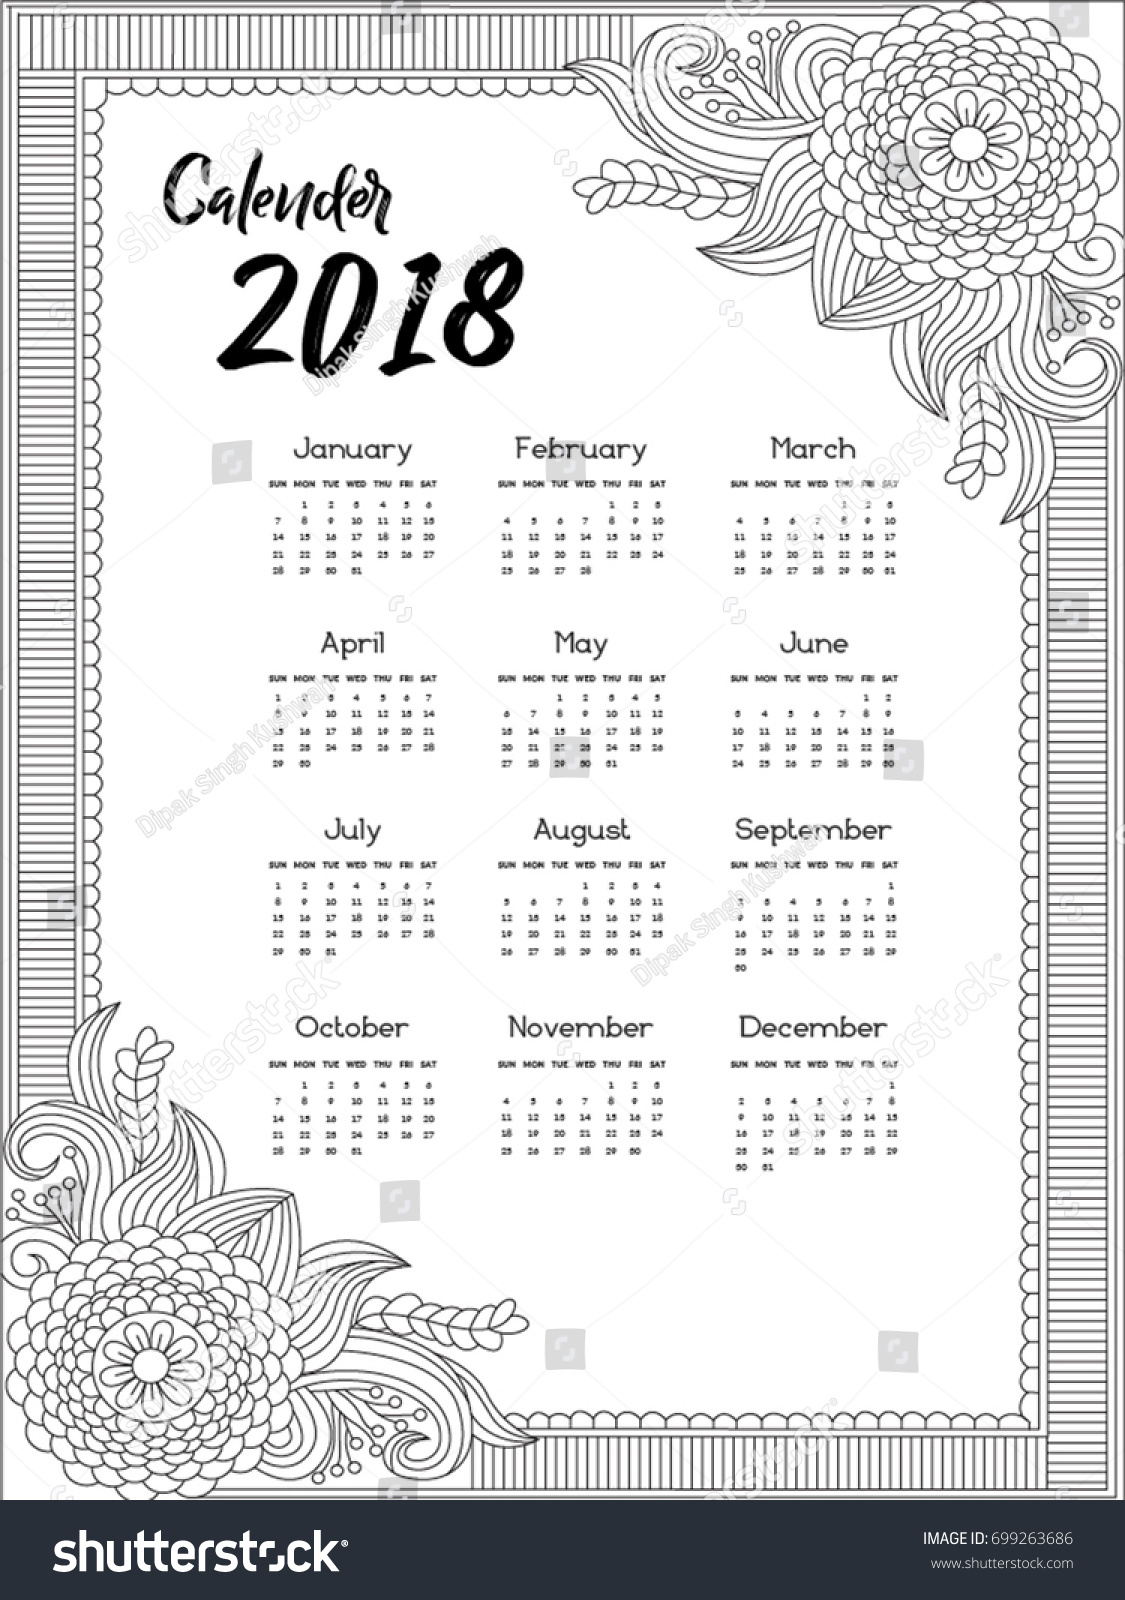 dating site safety tips for women 2018 calendar images